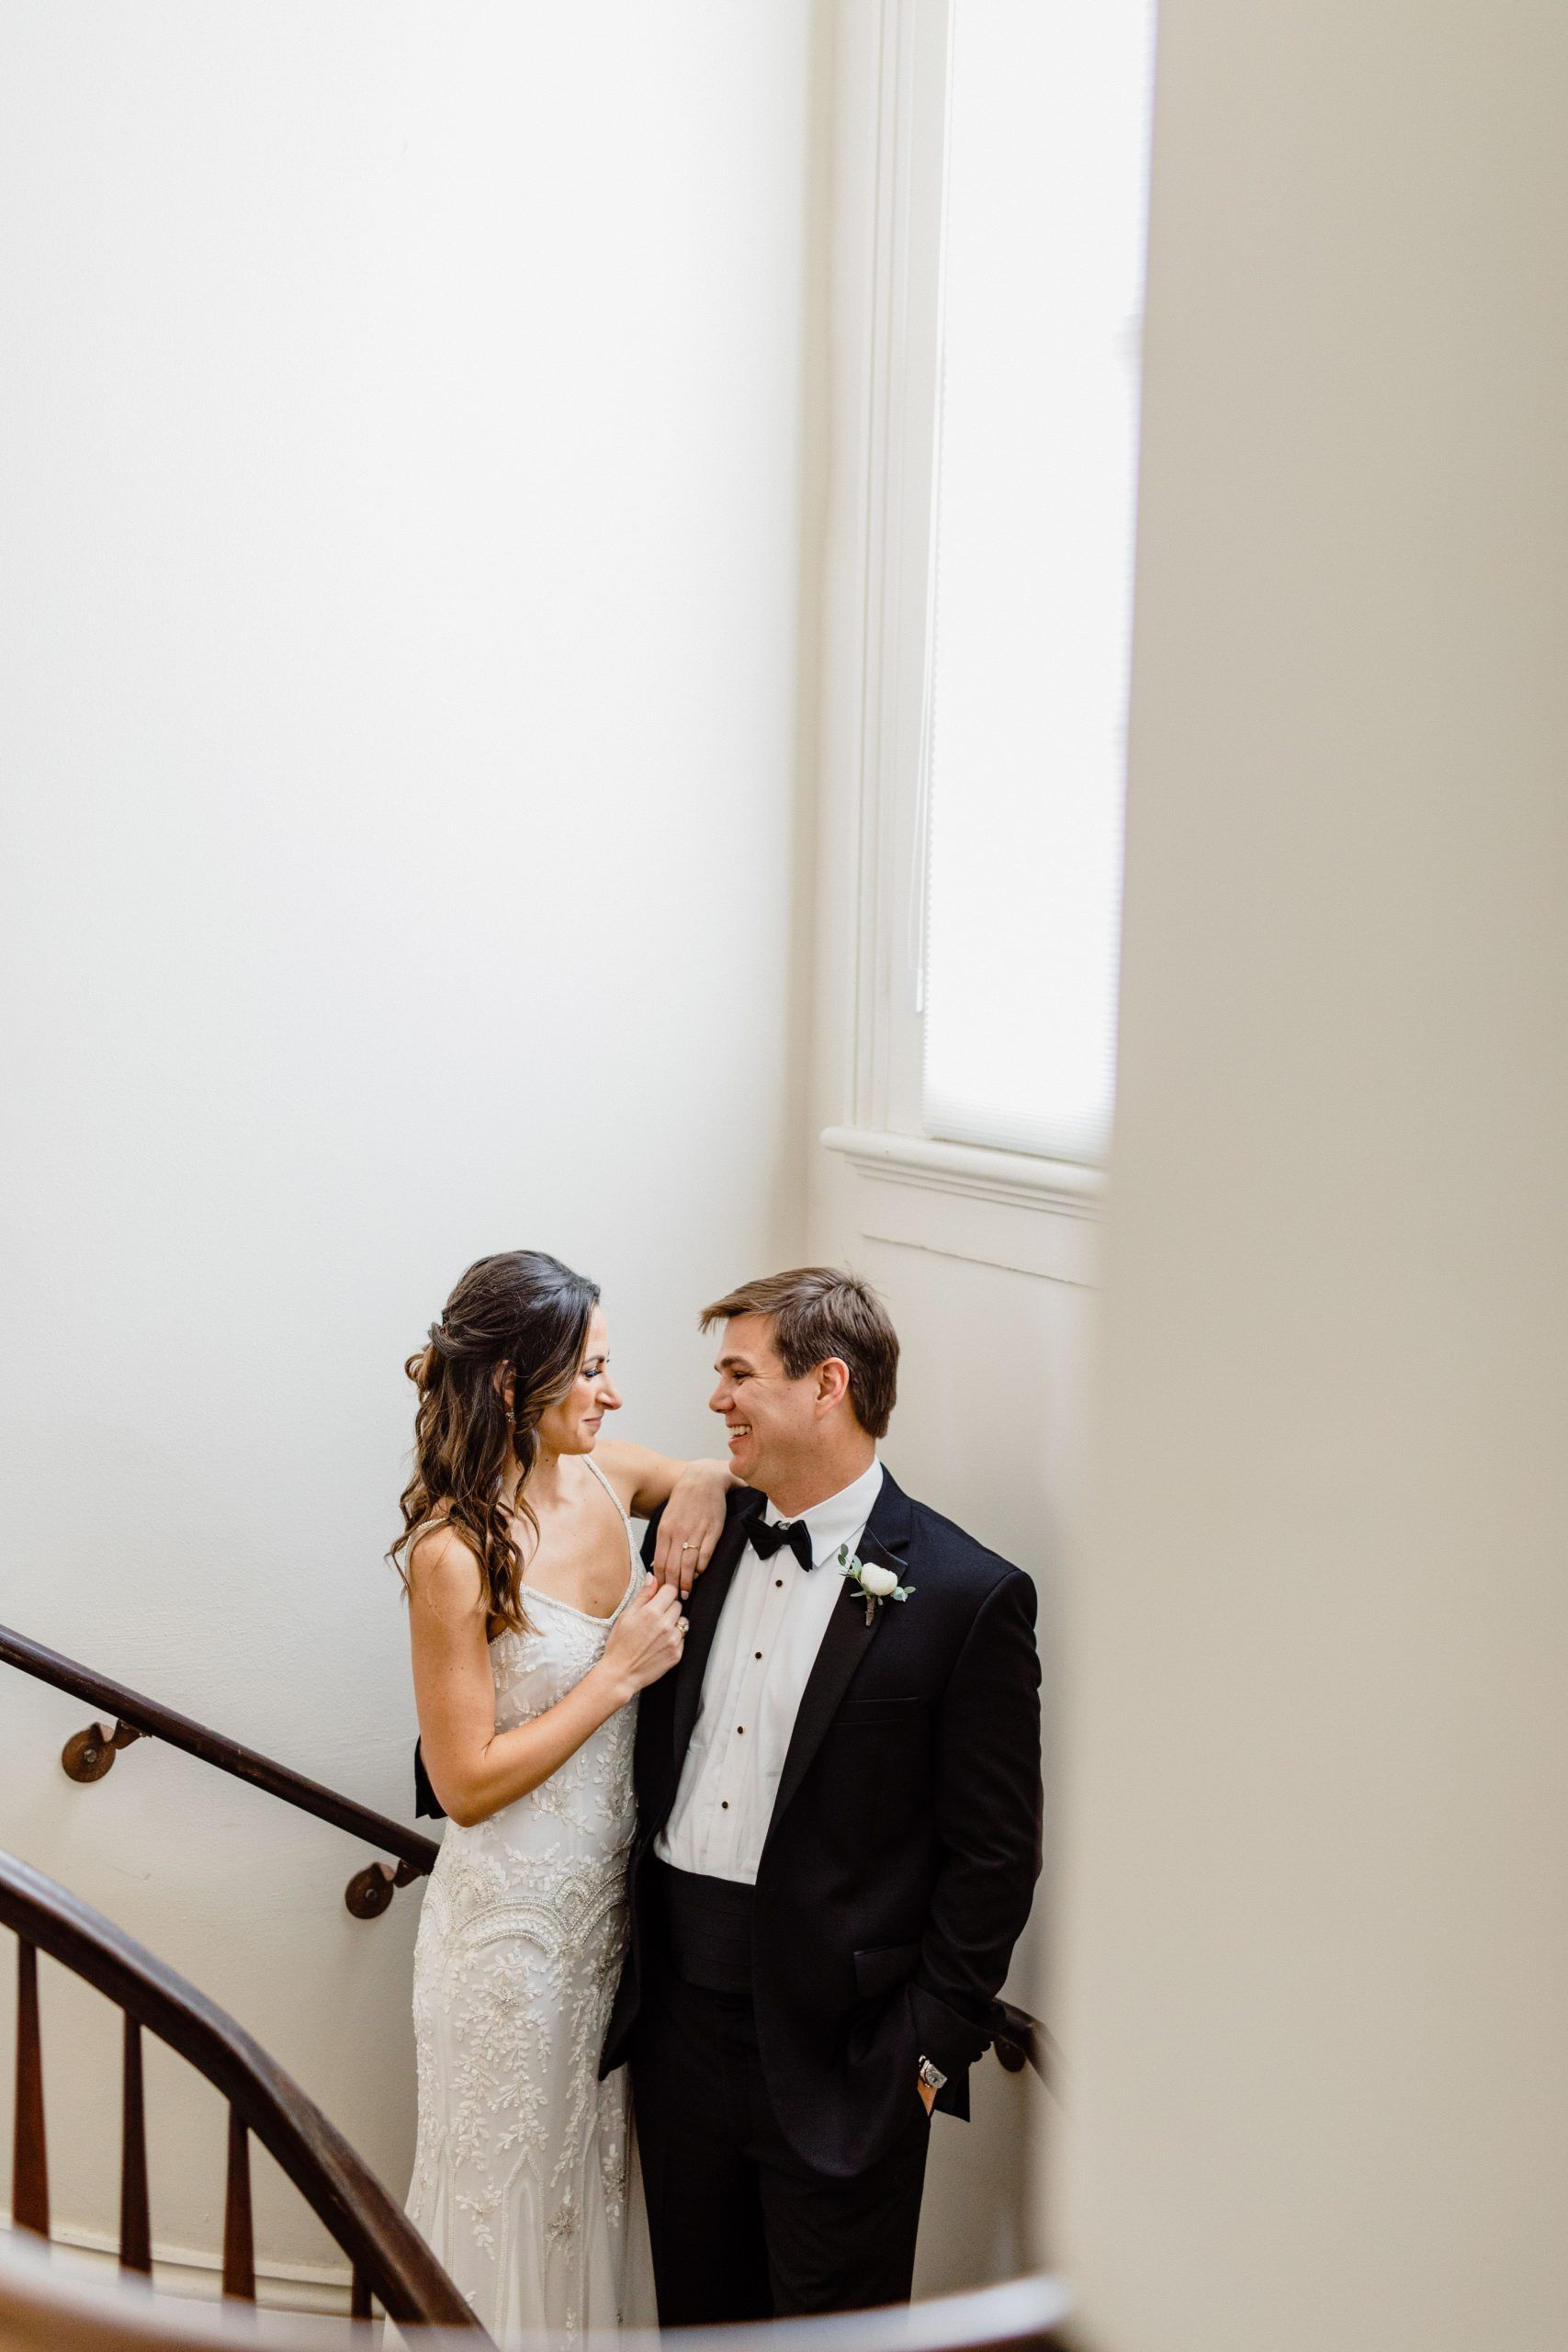 A Classic New Orleans Wedding At Cavan Louisiana Elopement And Wedding Photographer In 2020 New Orleans Wedding New Orleans Wedding Photographers